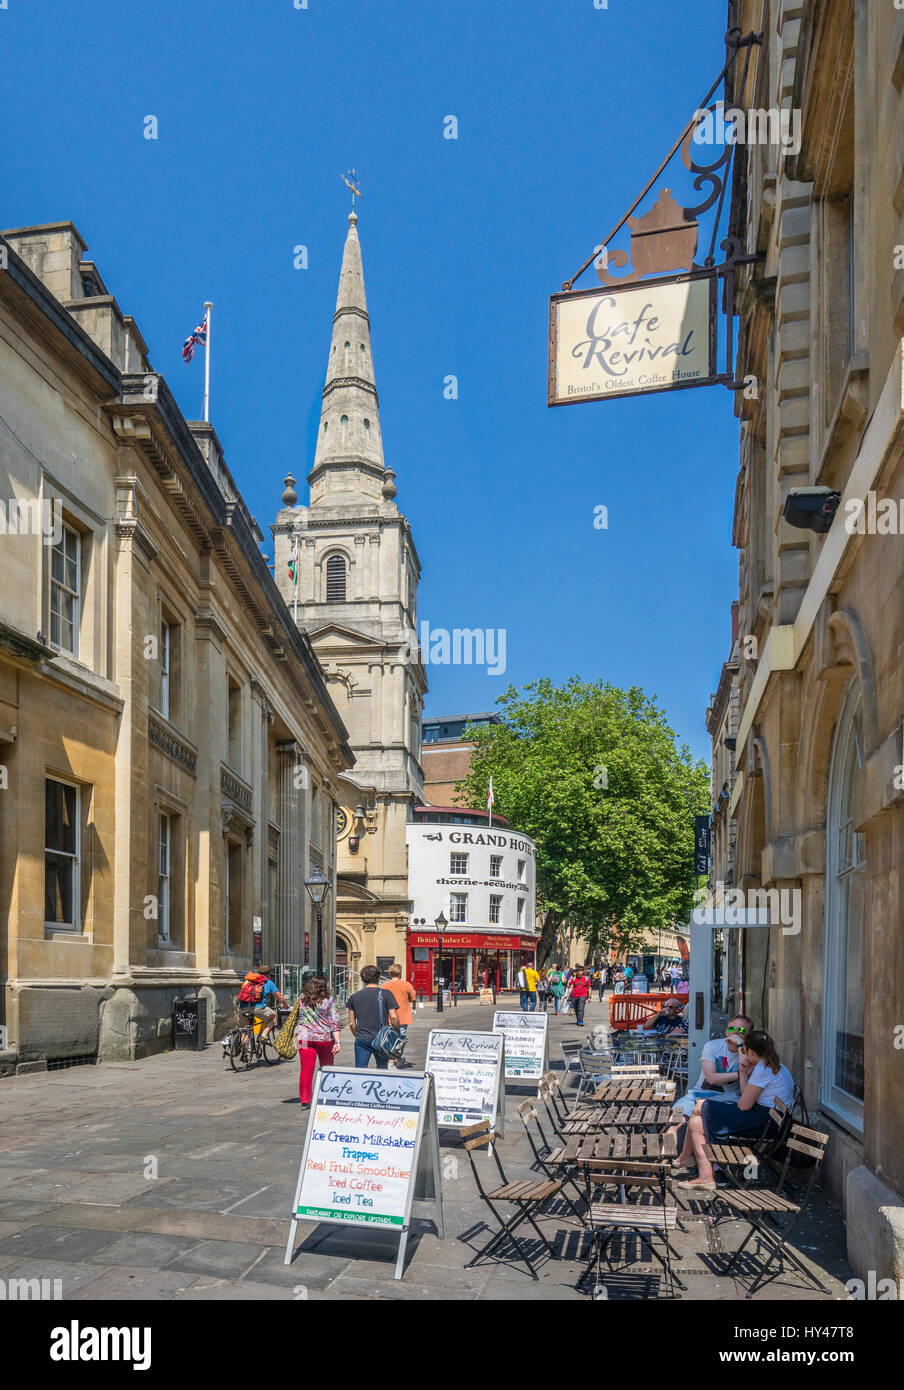 United Kingdom, South West England, Bristol, Corn Street with view of Christ Church with St Ewen, one of the principal - Stock Image